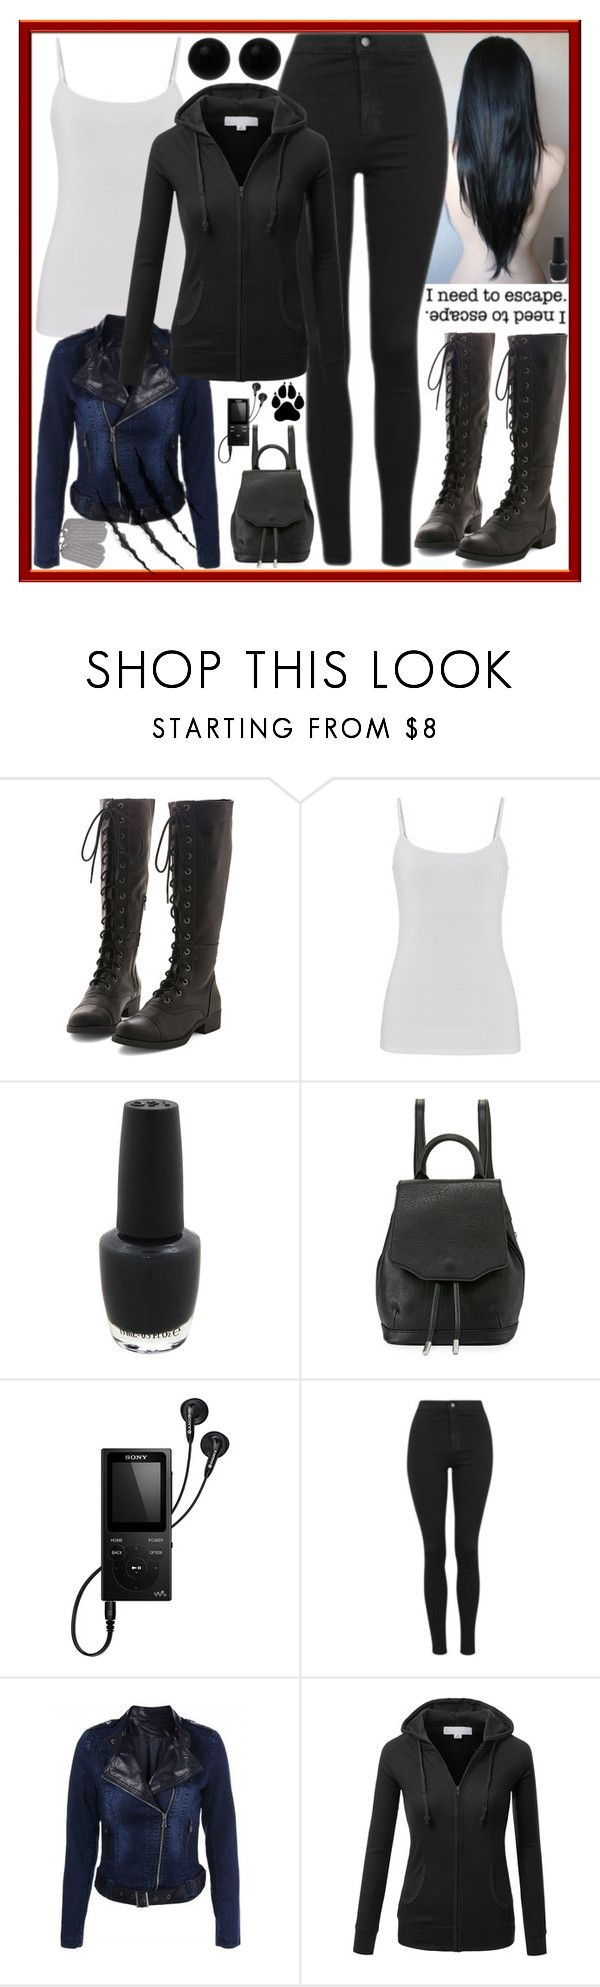 """""""Up side Right or Up side Down"""" by dev-lynn ❤ liked on Polyvore featuring maurices, OPI, rag & bone, Sony, Topshop, J.TOMSON, Sirius, Möve and Bridge Jewelry"""